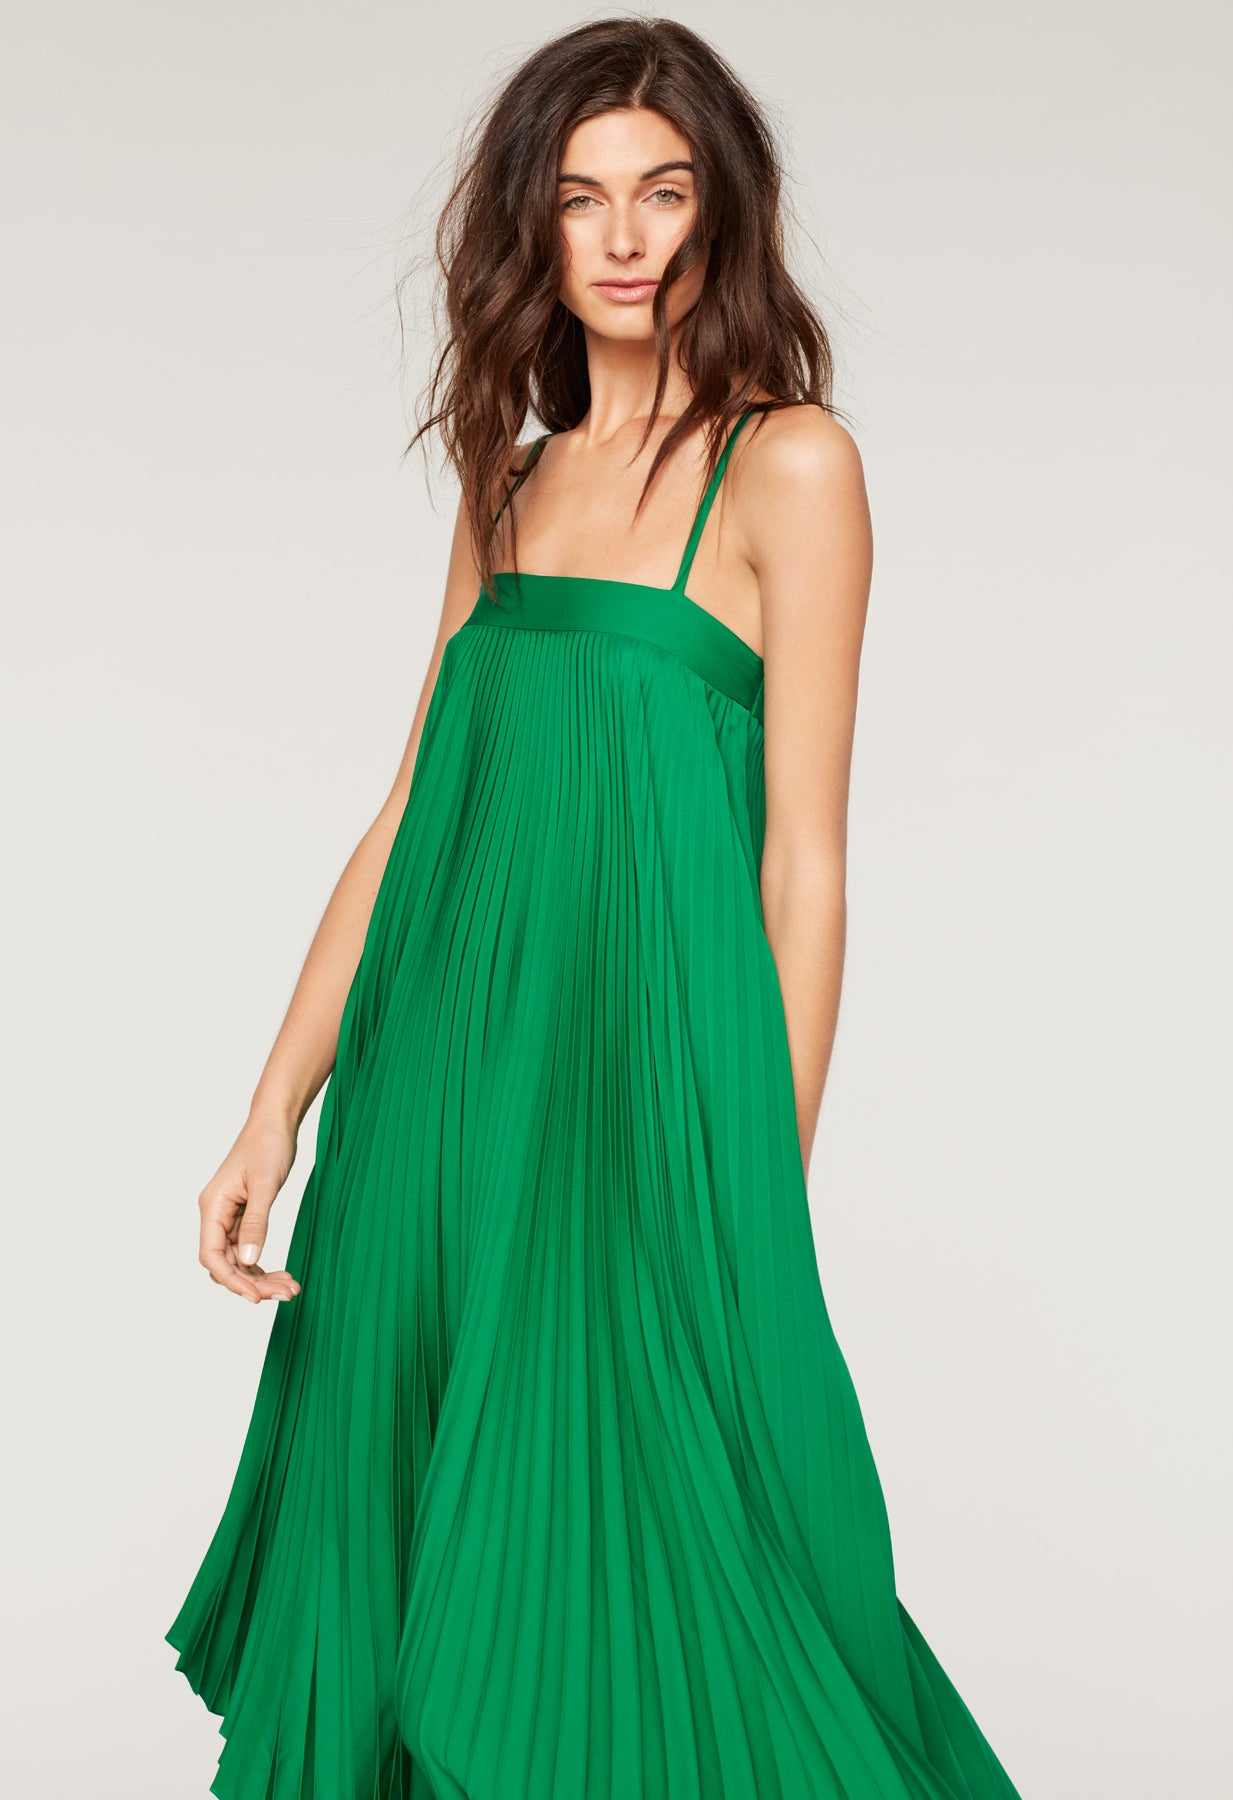 Stretch Silk Pleated Irene Dress - Milly | MILLY